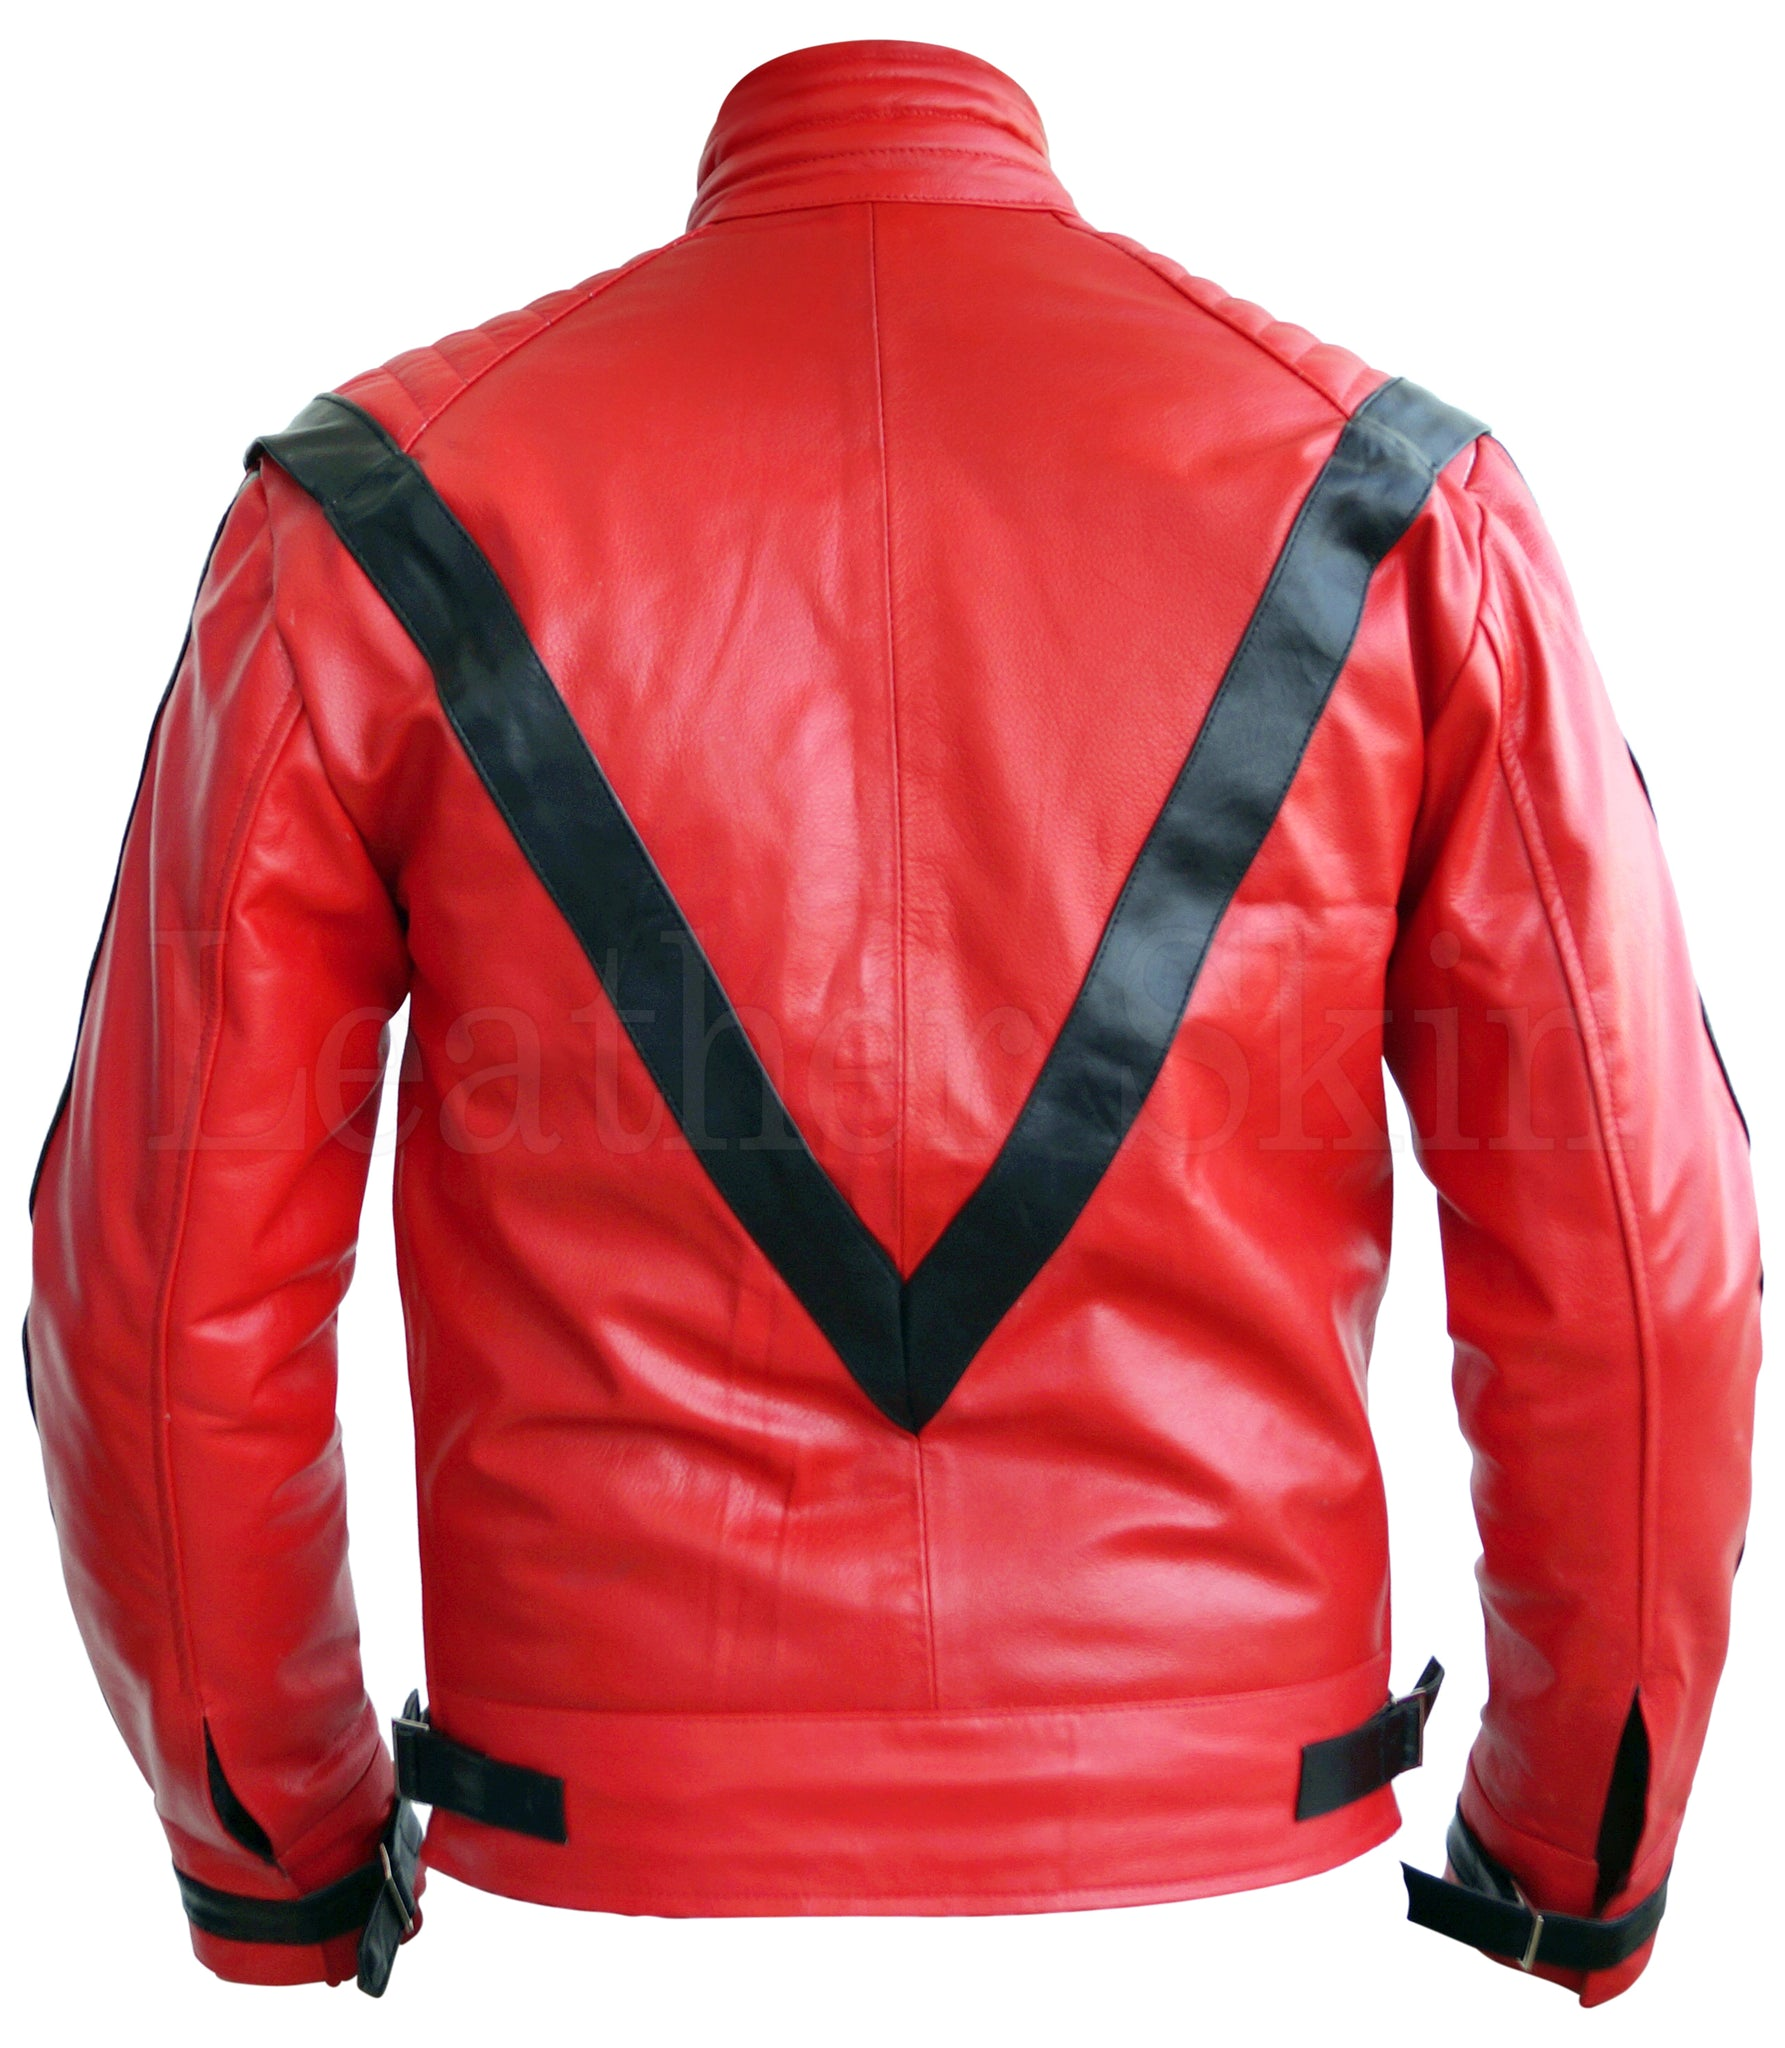 Michael Jackson Replica Red Leather Jacket